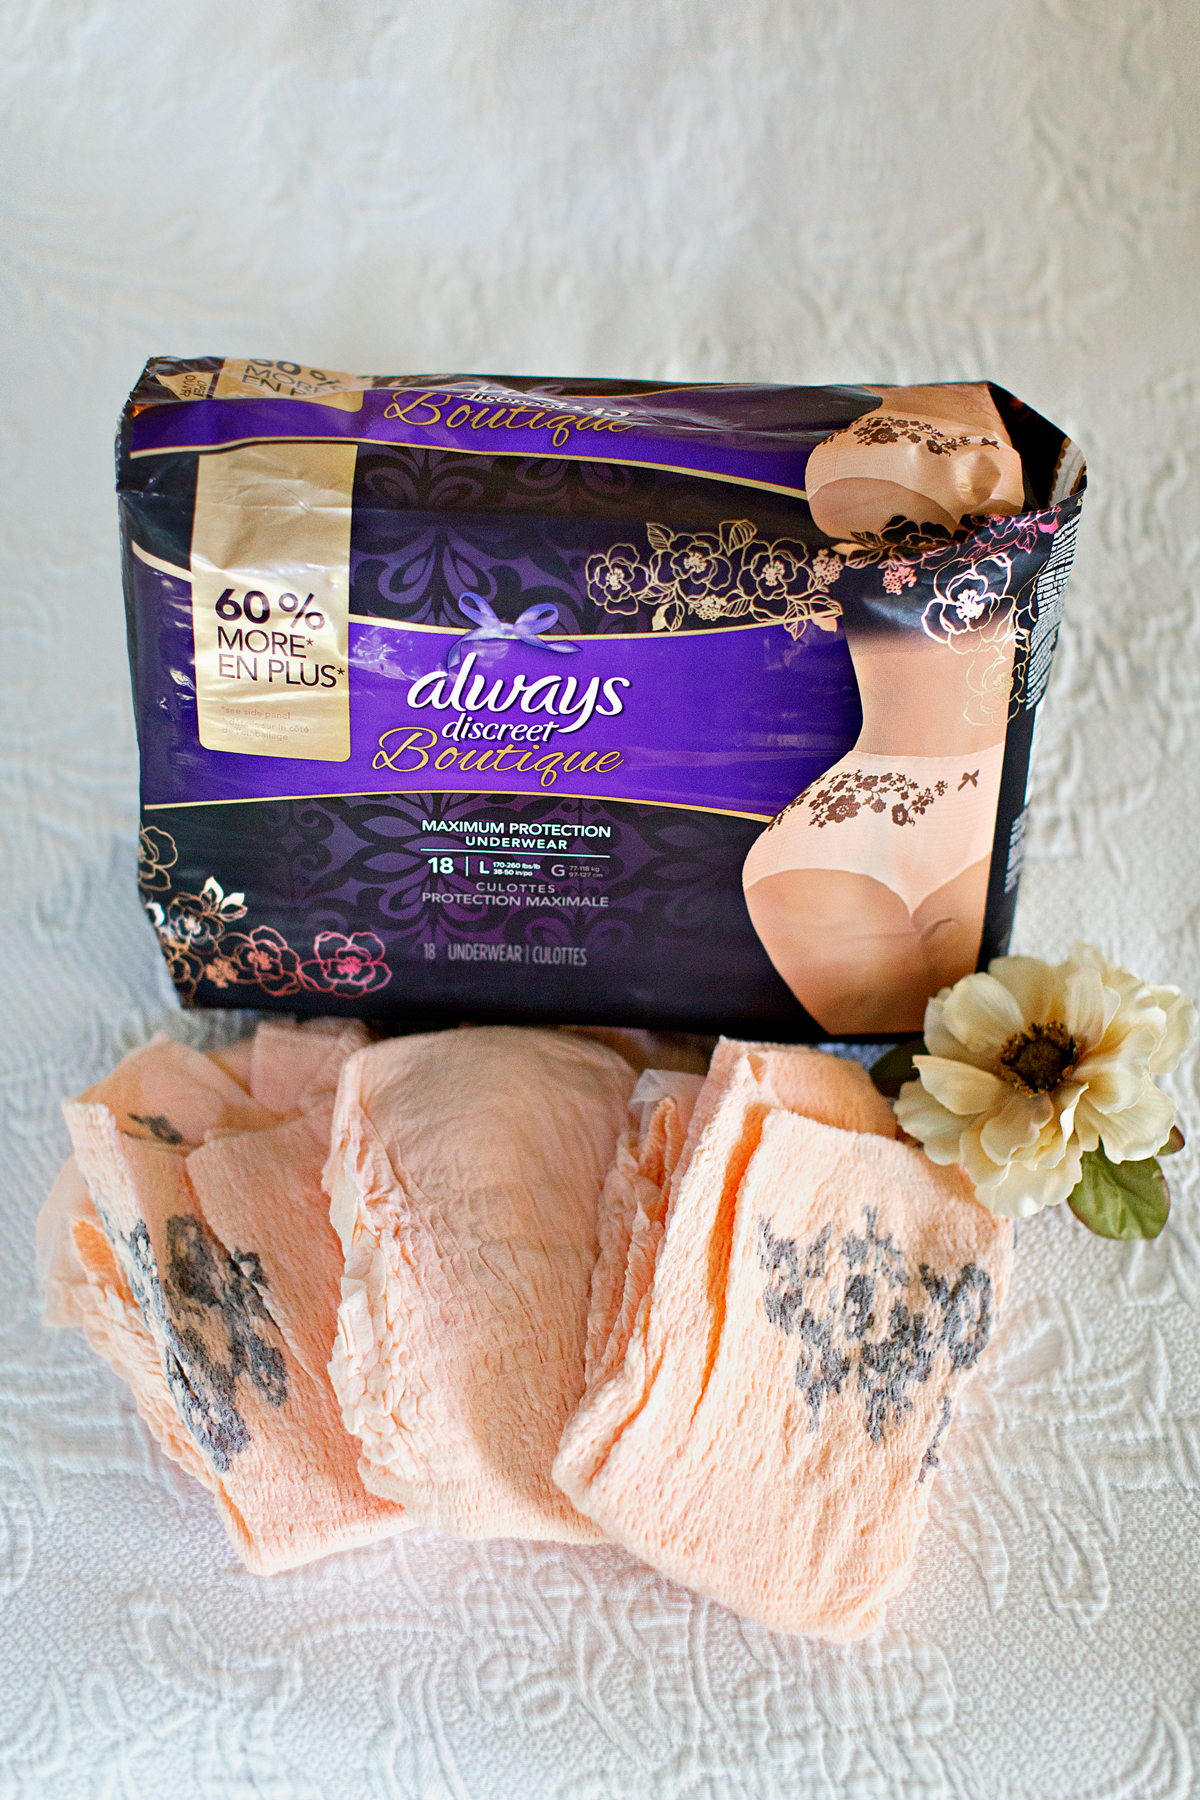 P&G, proctor and gamble, always discreet, always discreet underwear, always discreet boutique, always discreet coupons, incontinence, bladder leakage, midlife health, empty nester, empty nest, empty nesters, p&g everyday, p&g coupons, empty nest full life, pantene coupons, Swiffer coupons, charmain coupons, bounty coupons, self care for empty nesters, empty nest blog, empty nester blog, help for empty nesters, drugstore hair care product